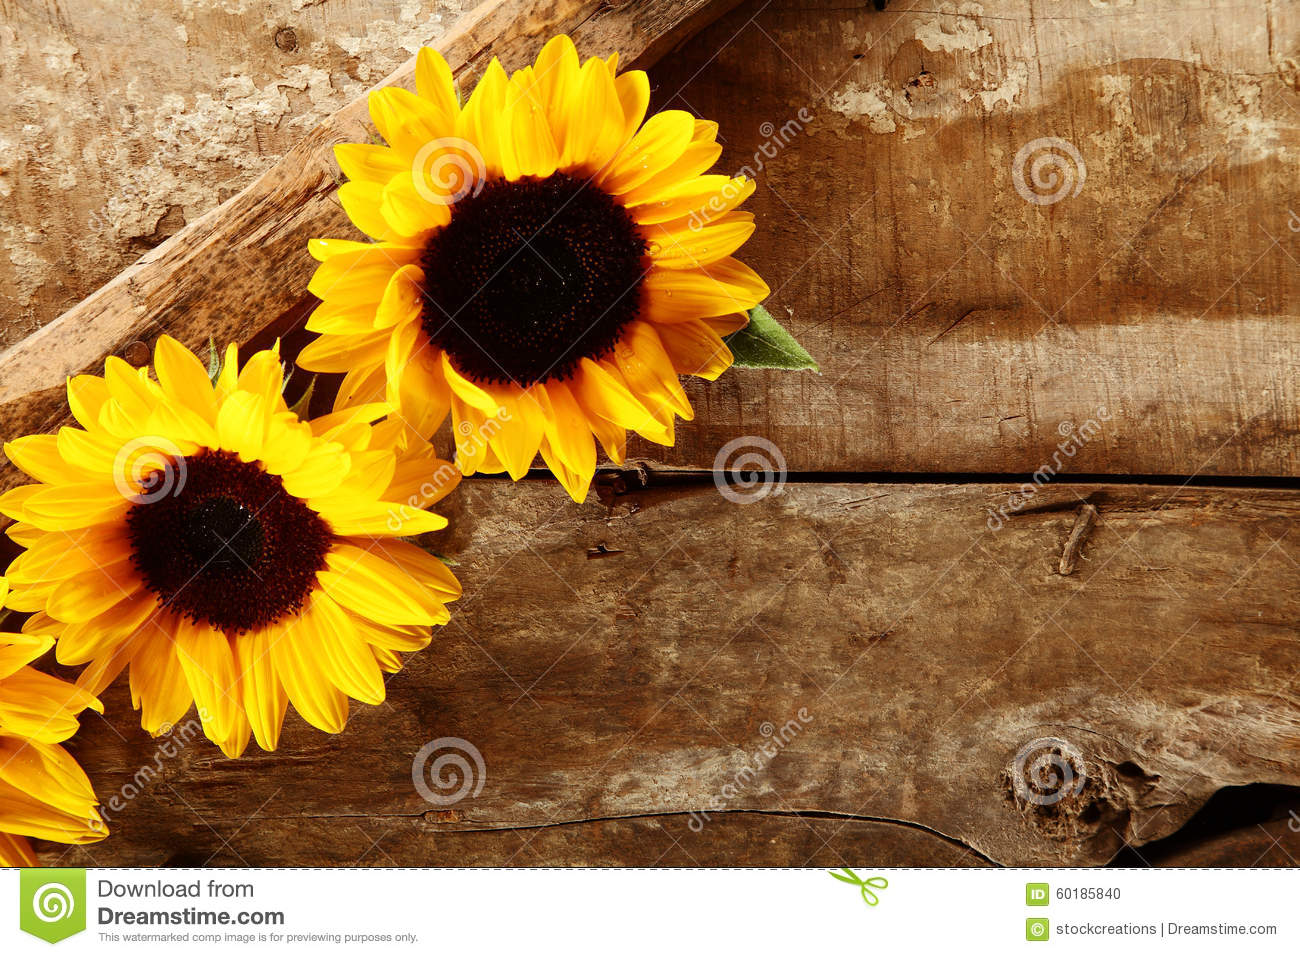 Free Fall Harvest Desktop Wallpaper Background With Sunflowers Daisies Cornflowers And Ears